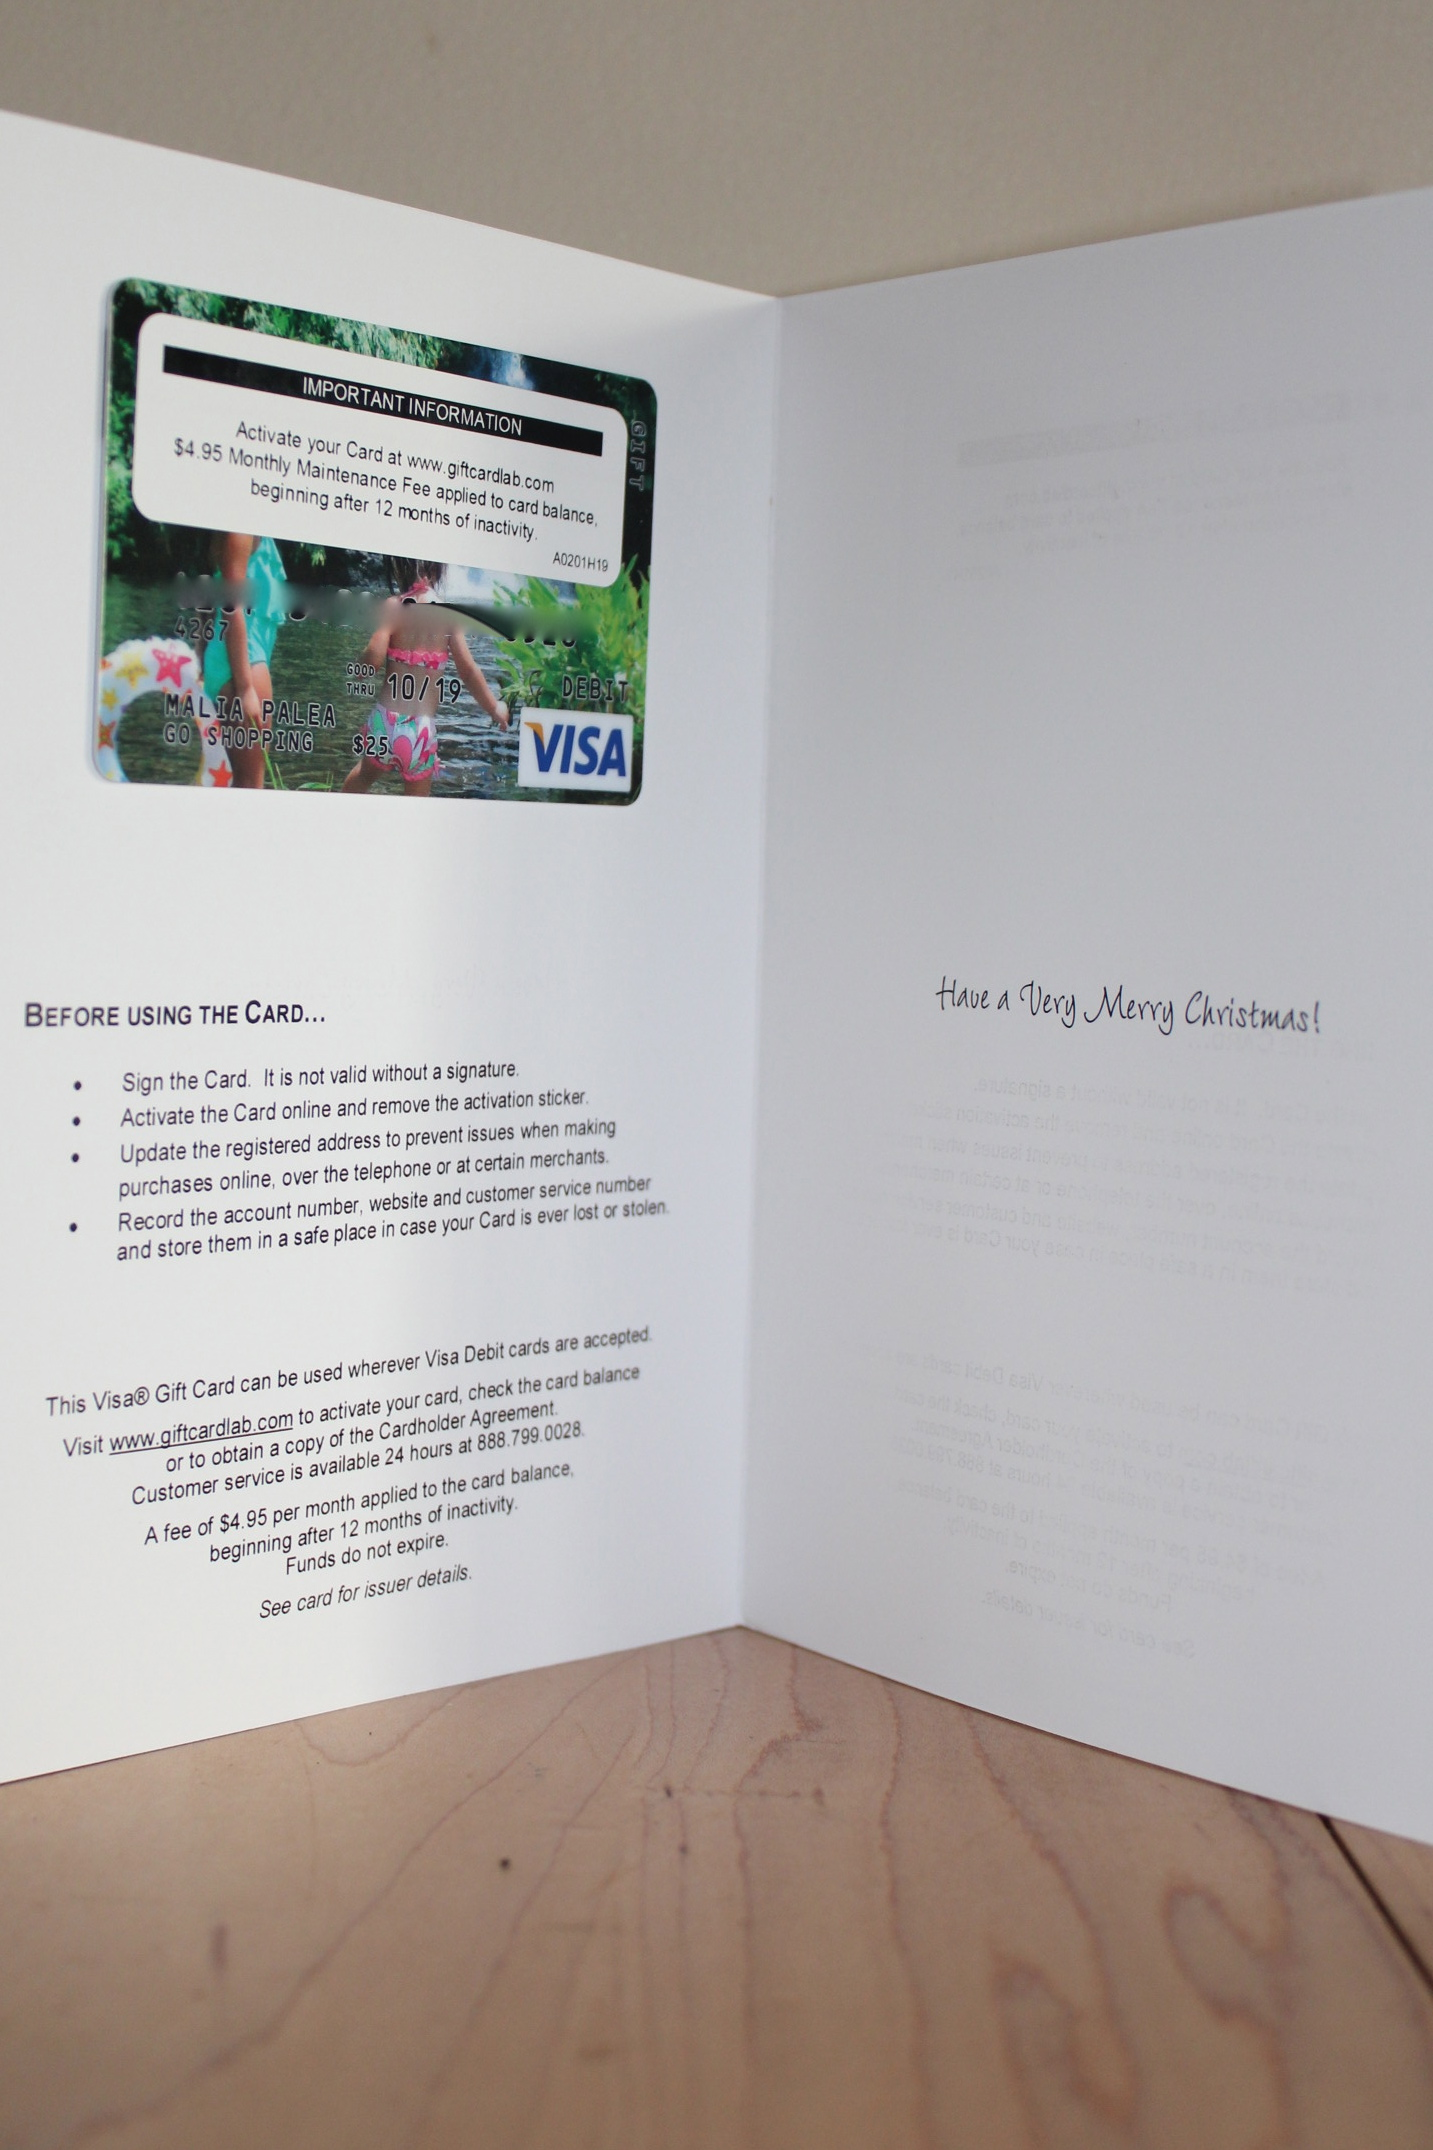 GiftCard com Personalized VISA Gift Card *2012 Holiday Gift